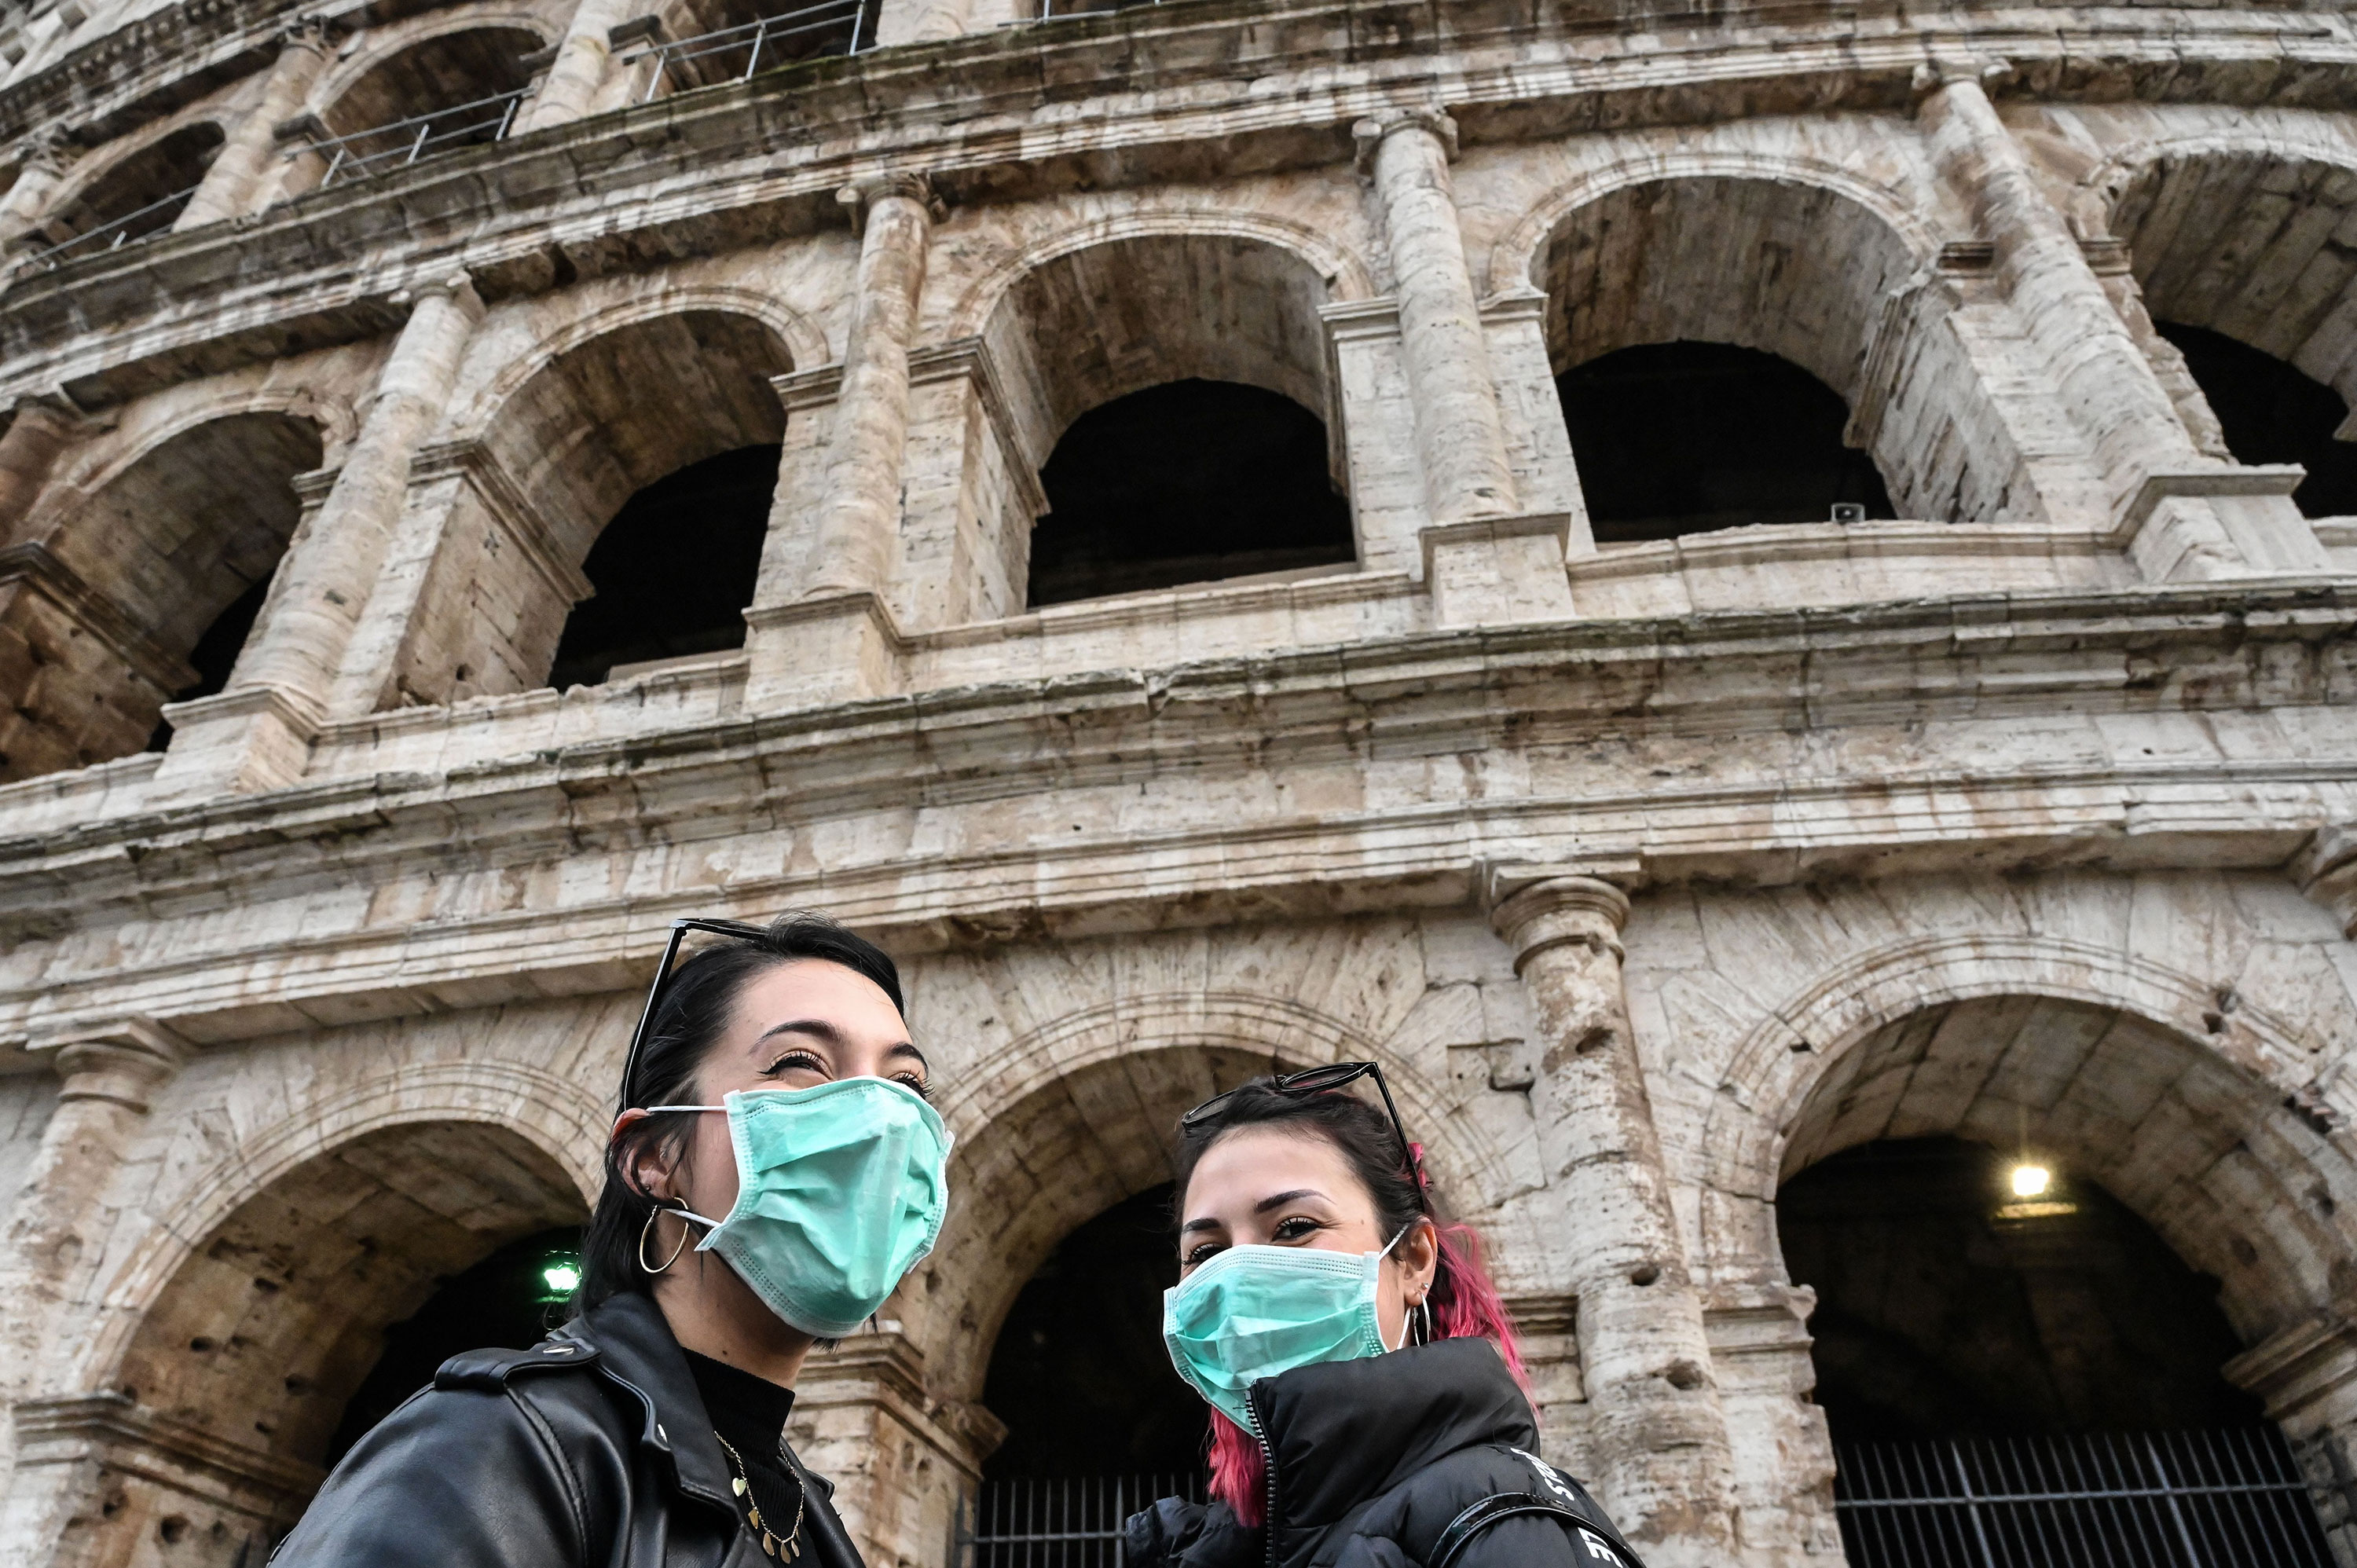 Tourists wear protective masks as they tour outside the Coliseum in Rome on January 31.